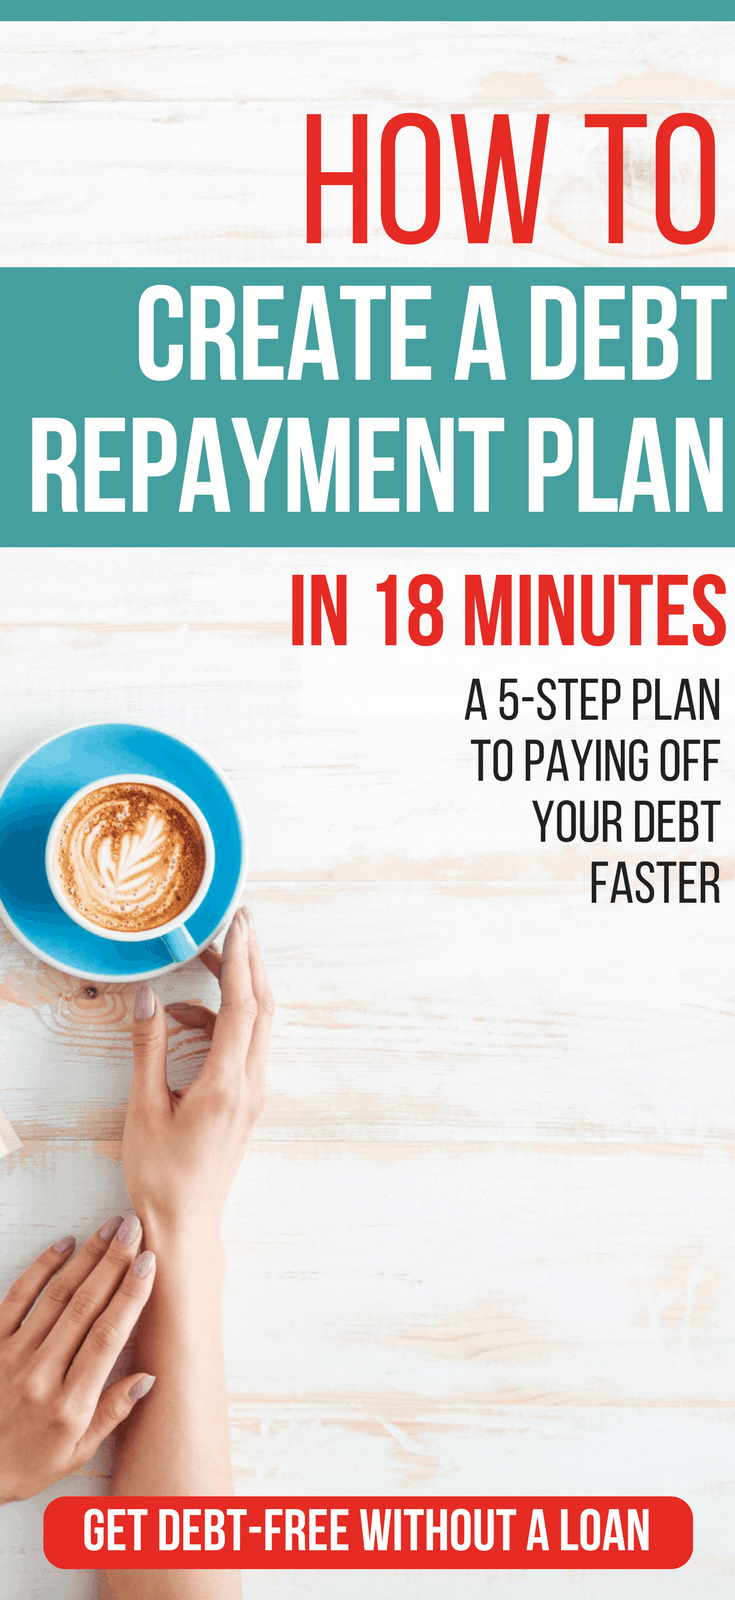 Debt Repayment Plan: An 18-Minute Plan To Start Paying Off Your DebtWhat's the best debt repayment plan for you? Create you plan to tackle in 18-minutes with this simple DIY guide.debt payoff strategies | best way to payoff debt | get out of debt fast tips | pay off debt quickly dave ramsey | debt snowball worksheet | debt avalanche vs debt snowball#thewaystowealth #debt #debtfree#daveramsey#debtsnowball